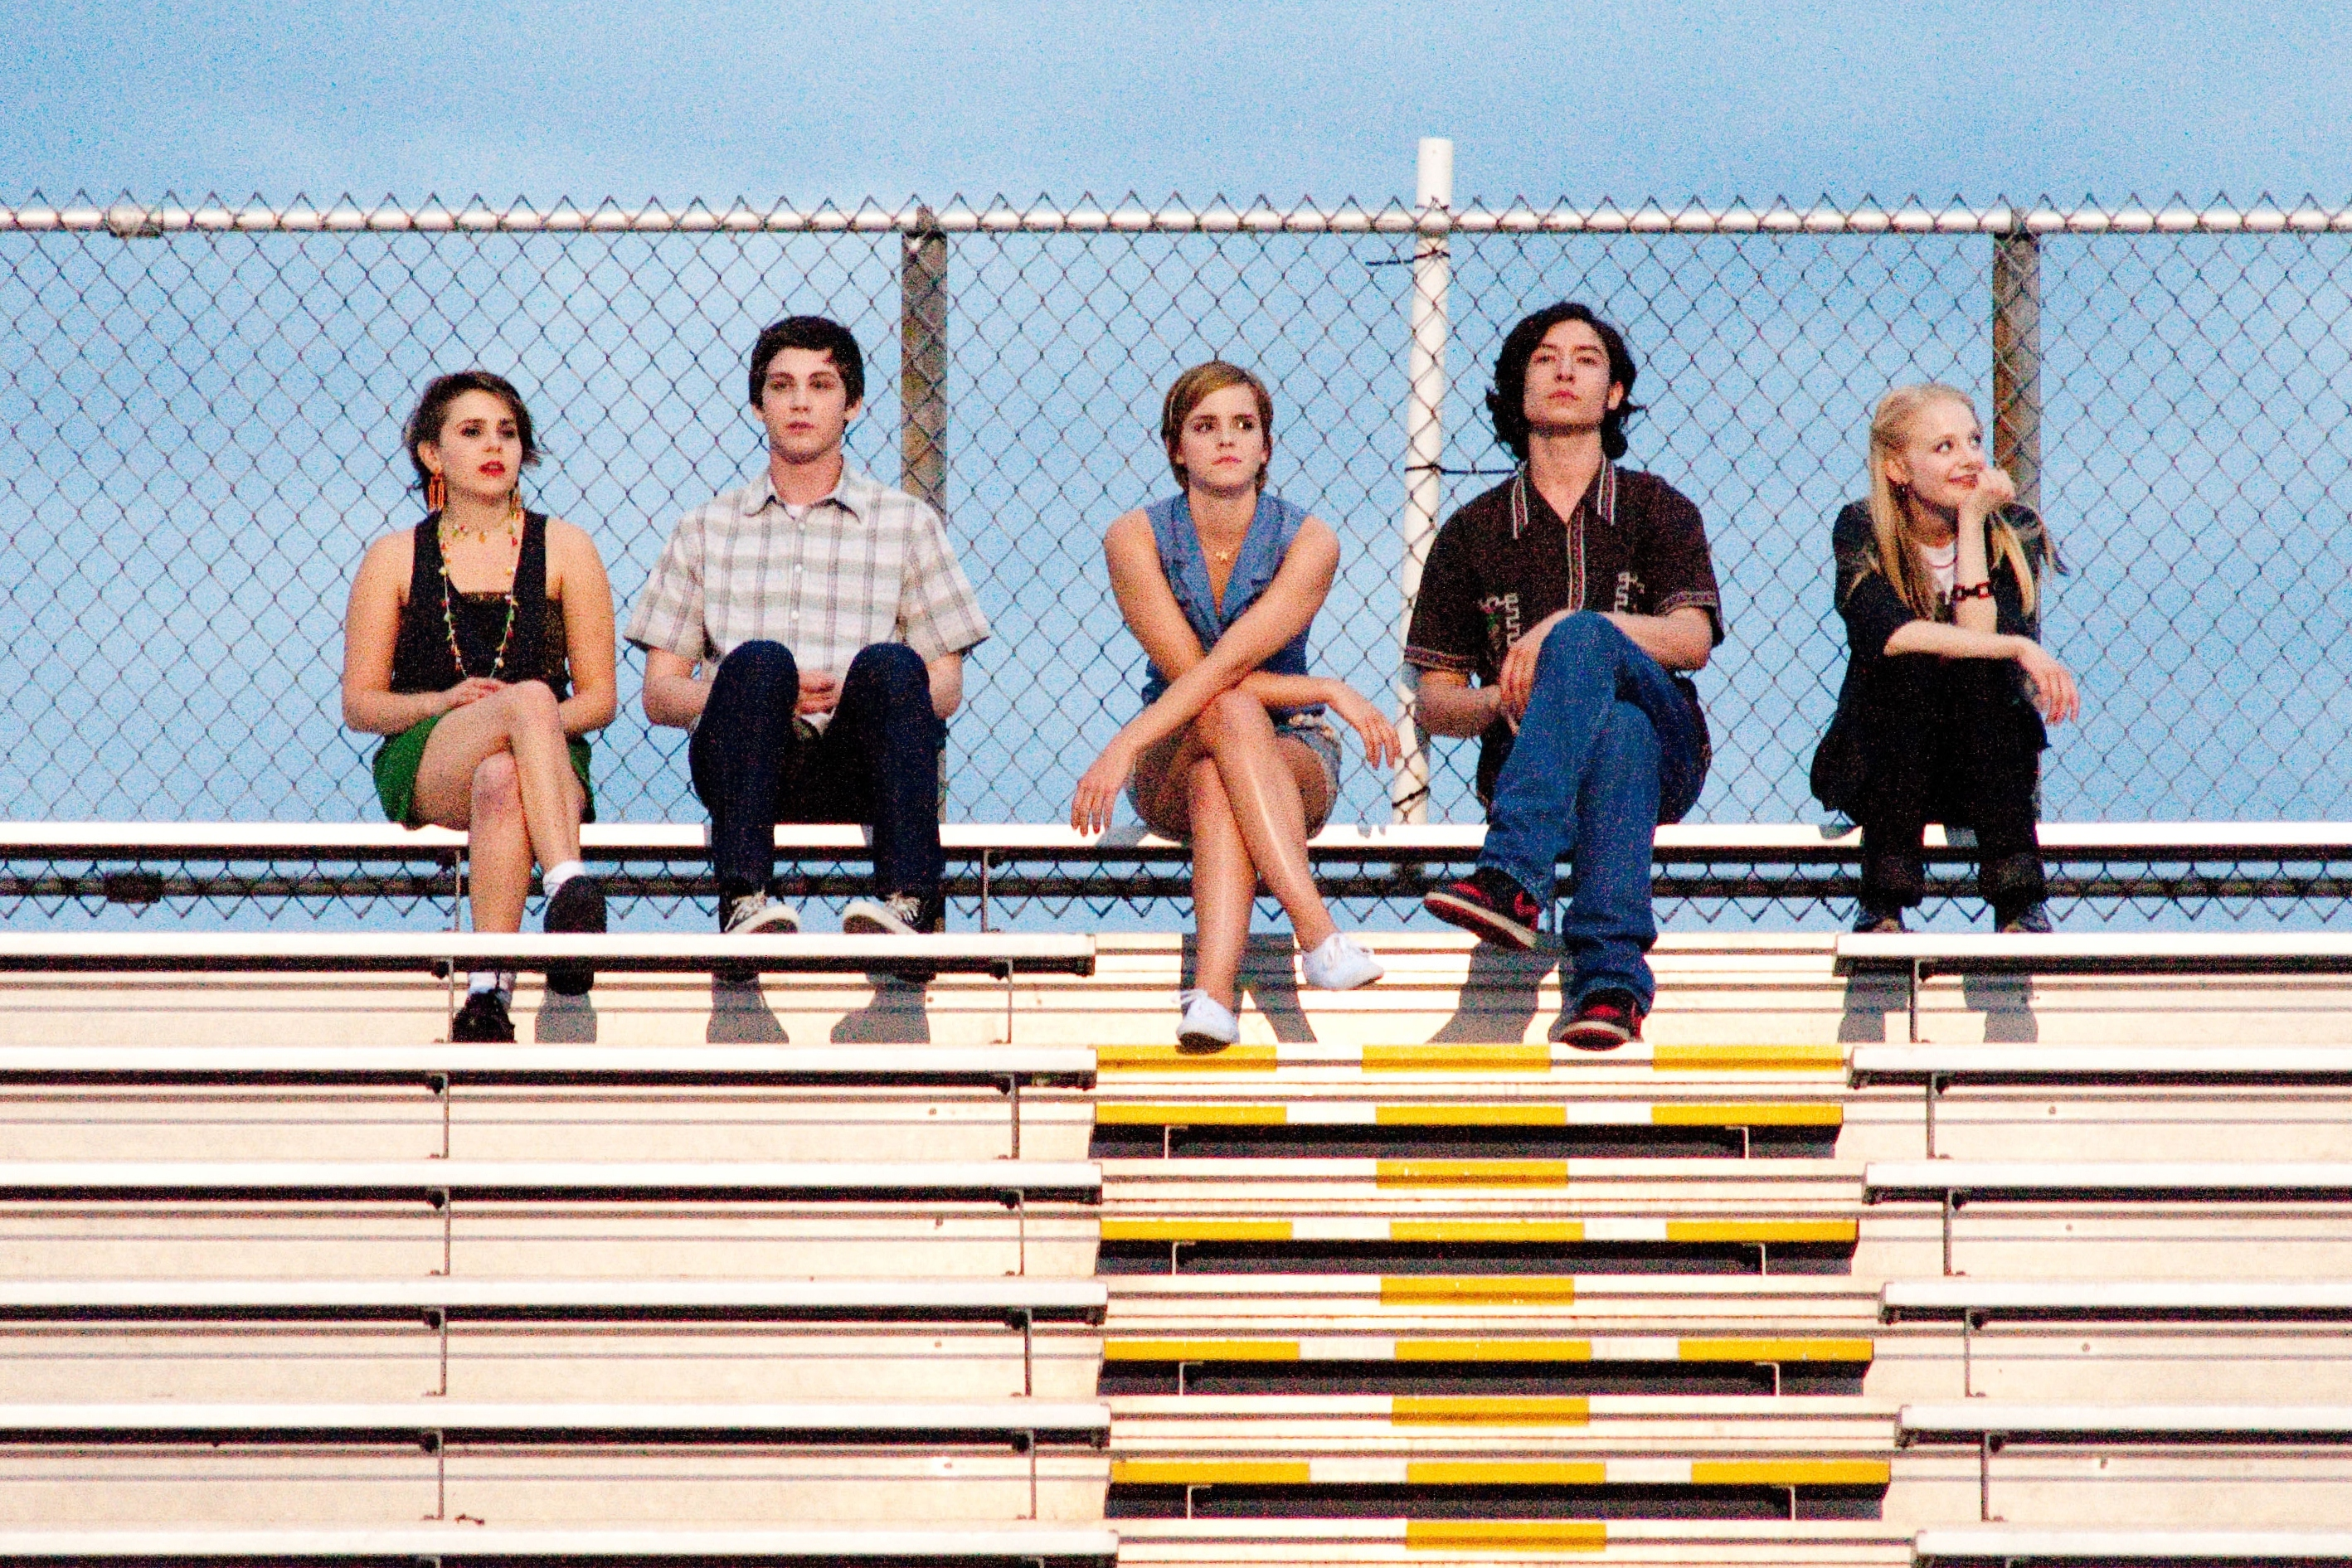 Alice The Perks Of Being A Wallflower